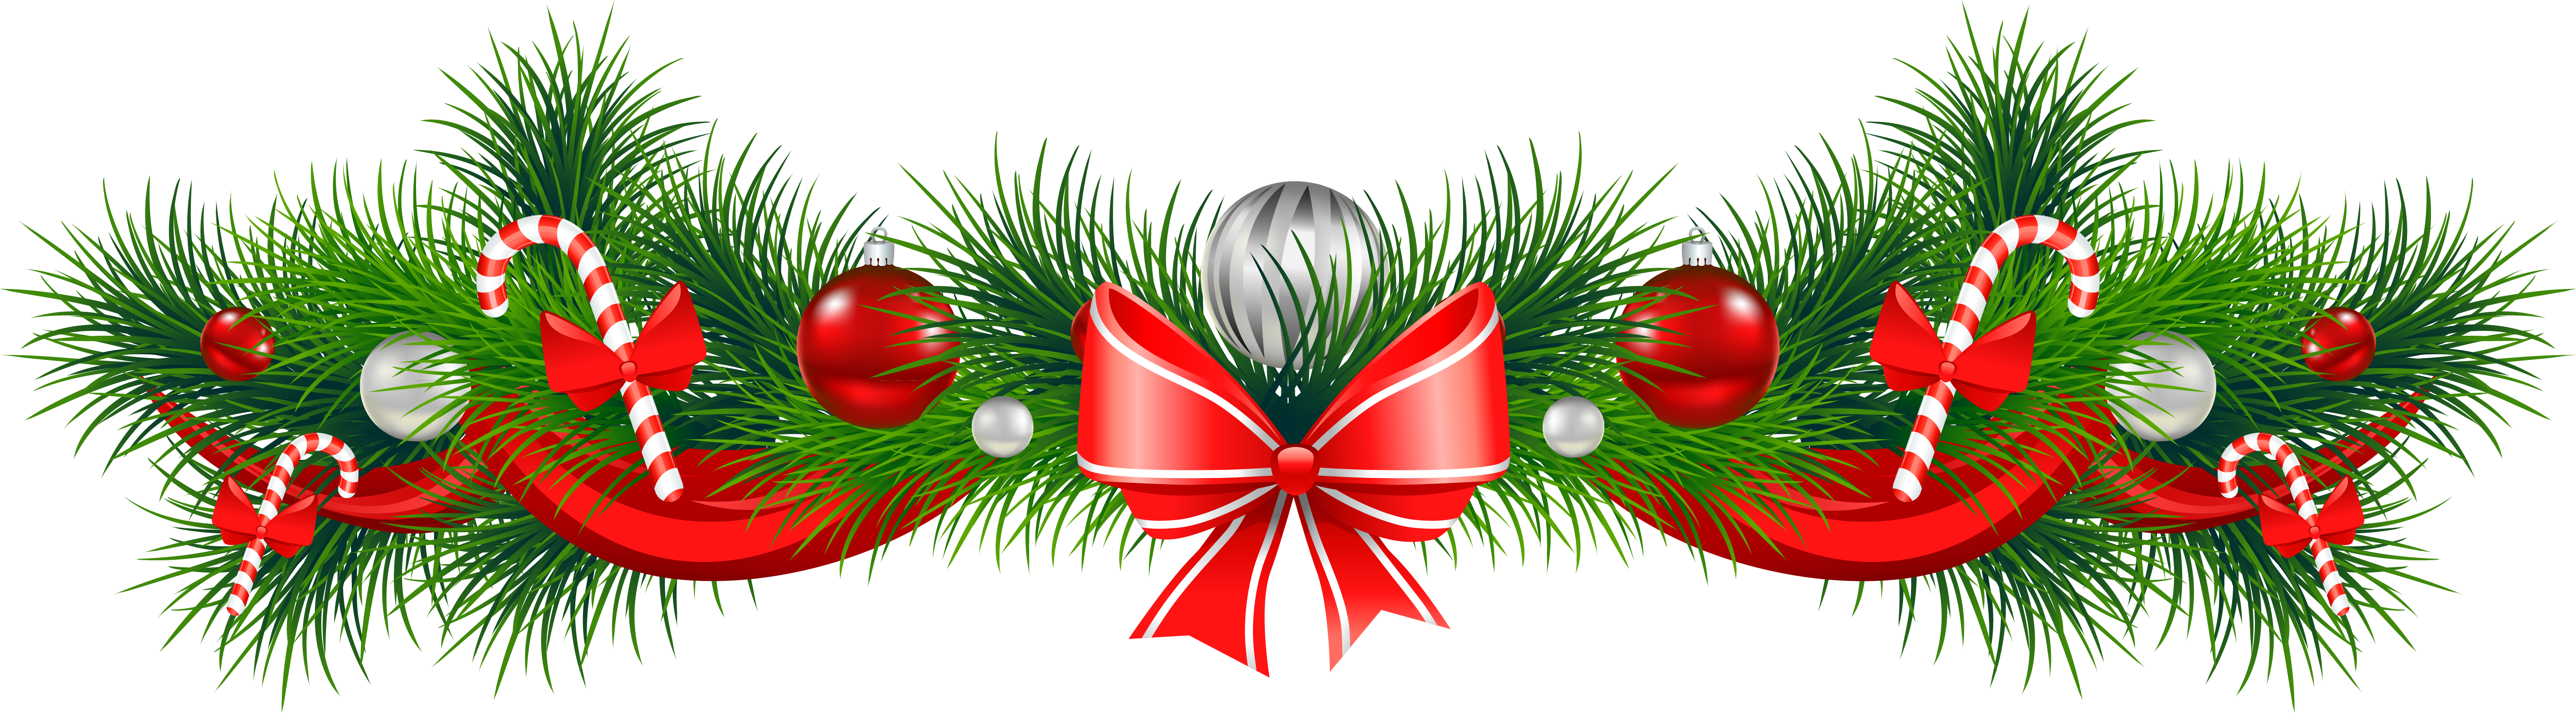 Transparent Background Christmas Garland Border Clipart.